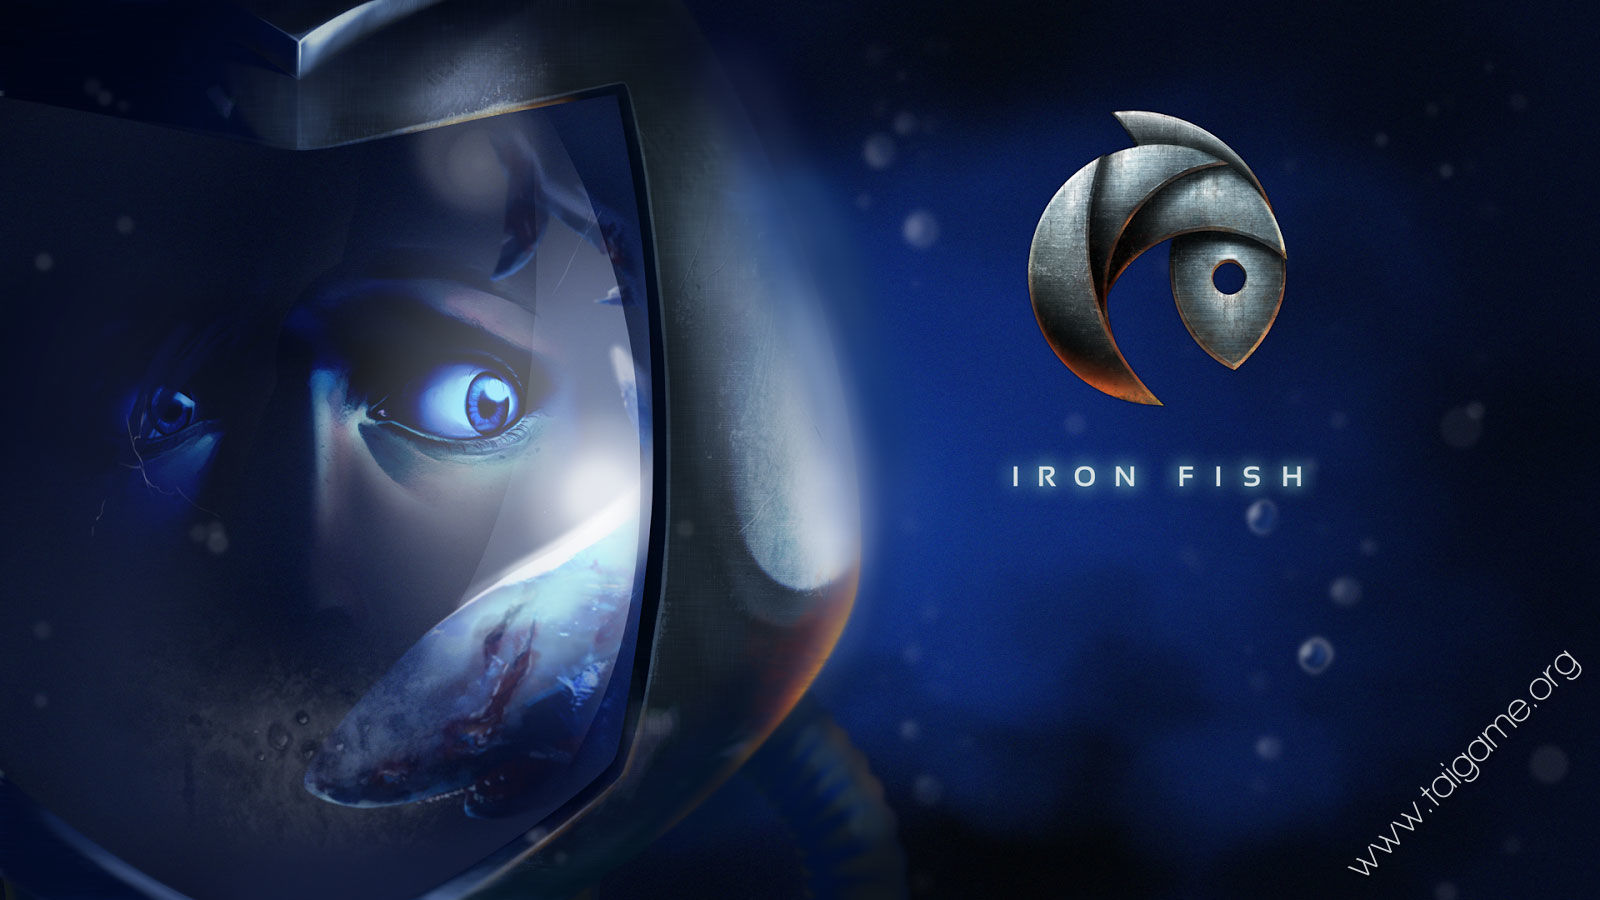 Iron fish download free full games adventure games for Iron in fish